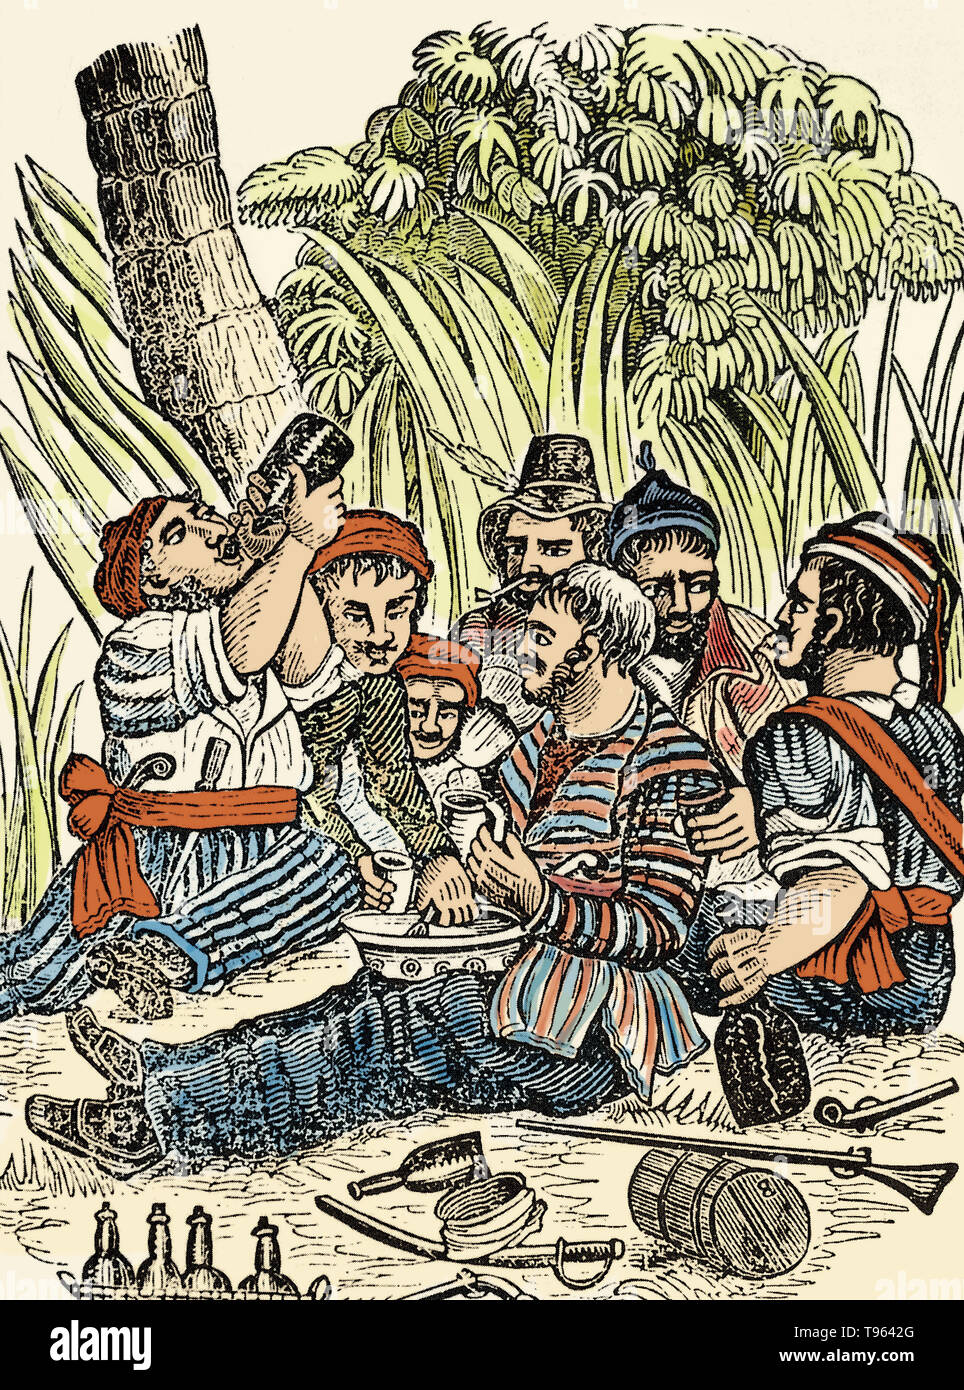 Bartholomew Roberts' crew drinking rum at the Calabar River in West Africa. Bartholomew Roberts (1682-1722) was a Welsh pirate who raided ships off America and West Africa between 1719 and 1722. He was the most successful pirate of the Golden Age of Piracy, as measured by vessels captured, taking over 470 prizes in his career. He is also known as Black Bart. In 1723 Roberts had captured the Neptune, and many of his crew were drunk and unfit for duty just when he needed them most. Captain Roberts was killed by a grapeshot, which struck him in the throat while he stood on the deck. Before his bo - Stock Image